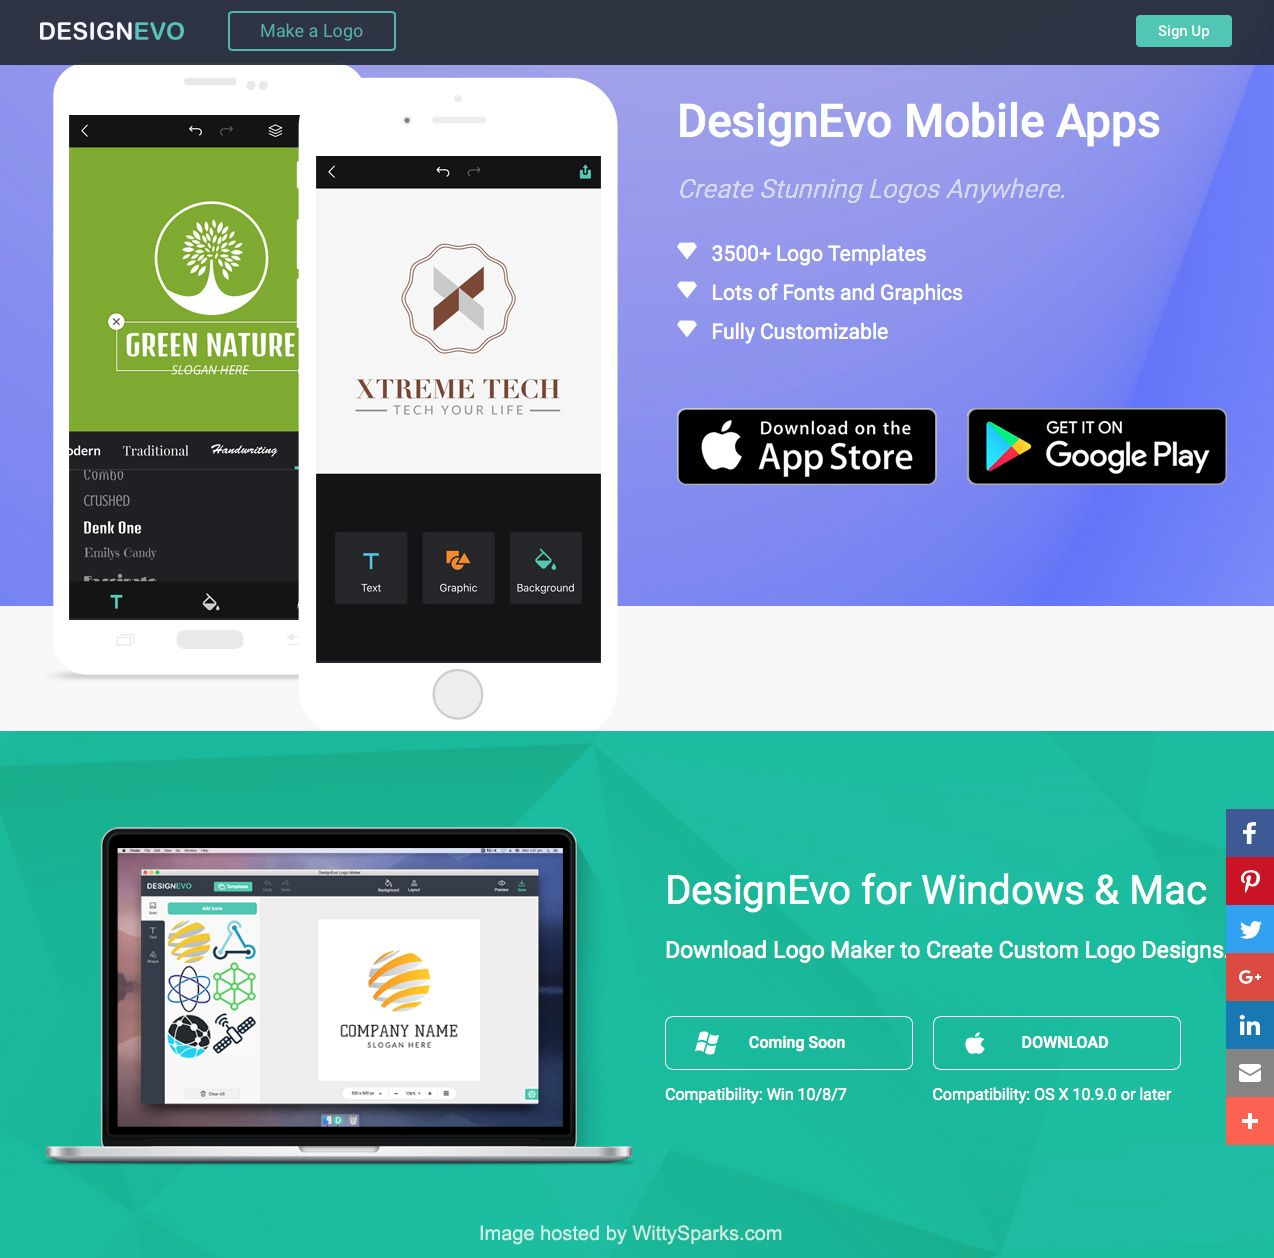 Designevo Desktop Mobile Apps Mobile App App Web Development Software